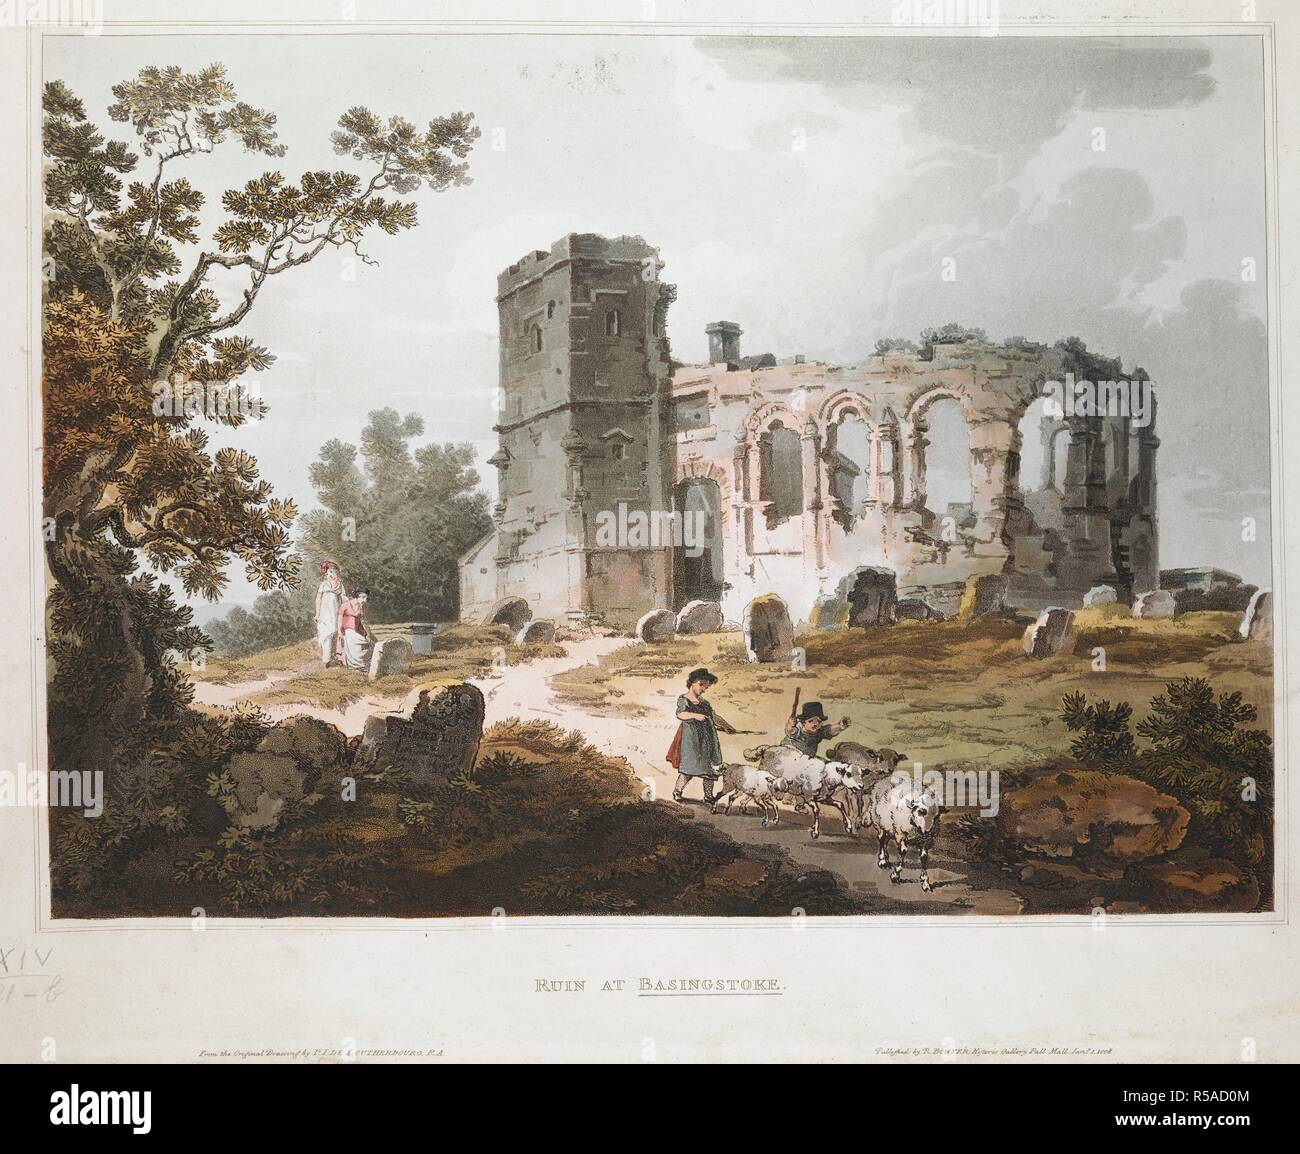 A ruined chapel in the middle distance with arched windows, its nave to the right, a tower to the left, behind a cemetery where two women rest on the left; two children in the foreground chasing four sheep  . RUIN AT BASINGSTOKE. [London] : Published by R. BOWYER Historie Gallery, Pall Mall, Jany 1 1808. Aquatint and etching with hand-colouring. Source: Maps K.Top.14.21.b. Language: English. Author: Philippe-Jacques de Loutherbourg. Stock Photo